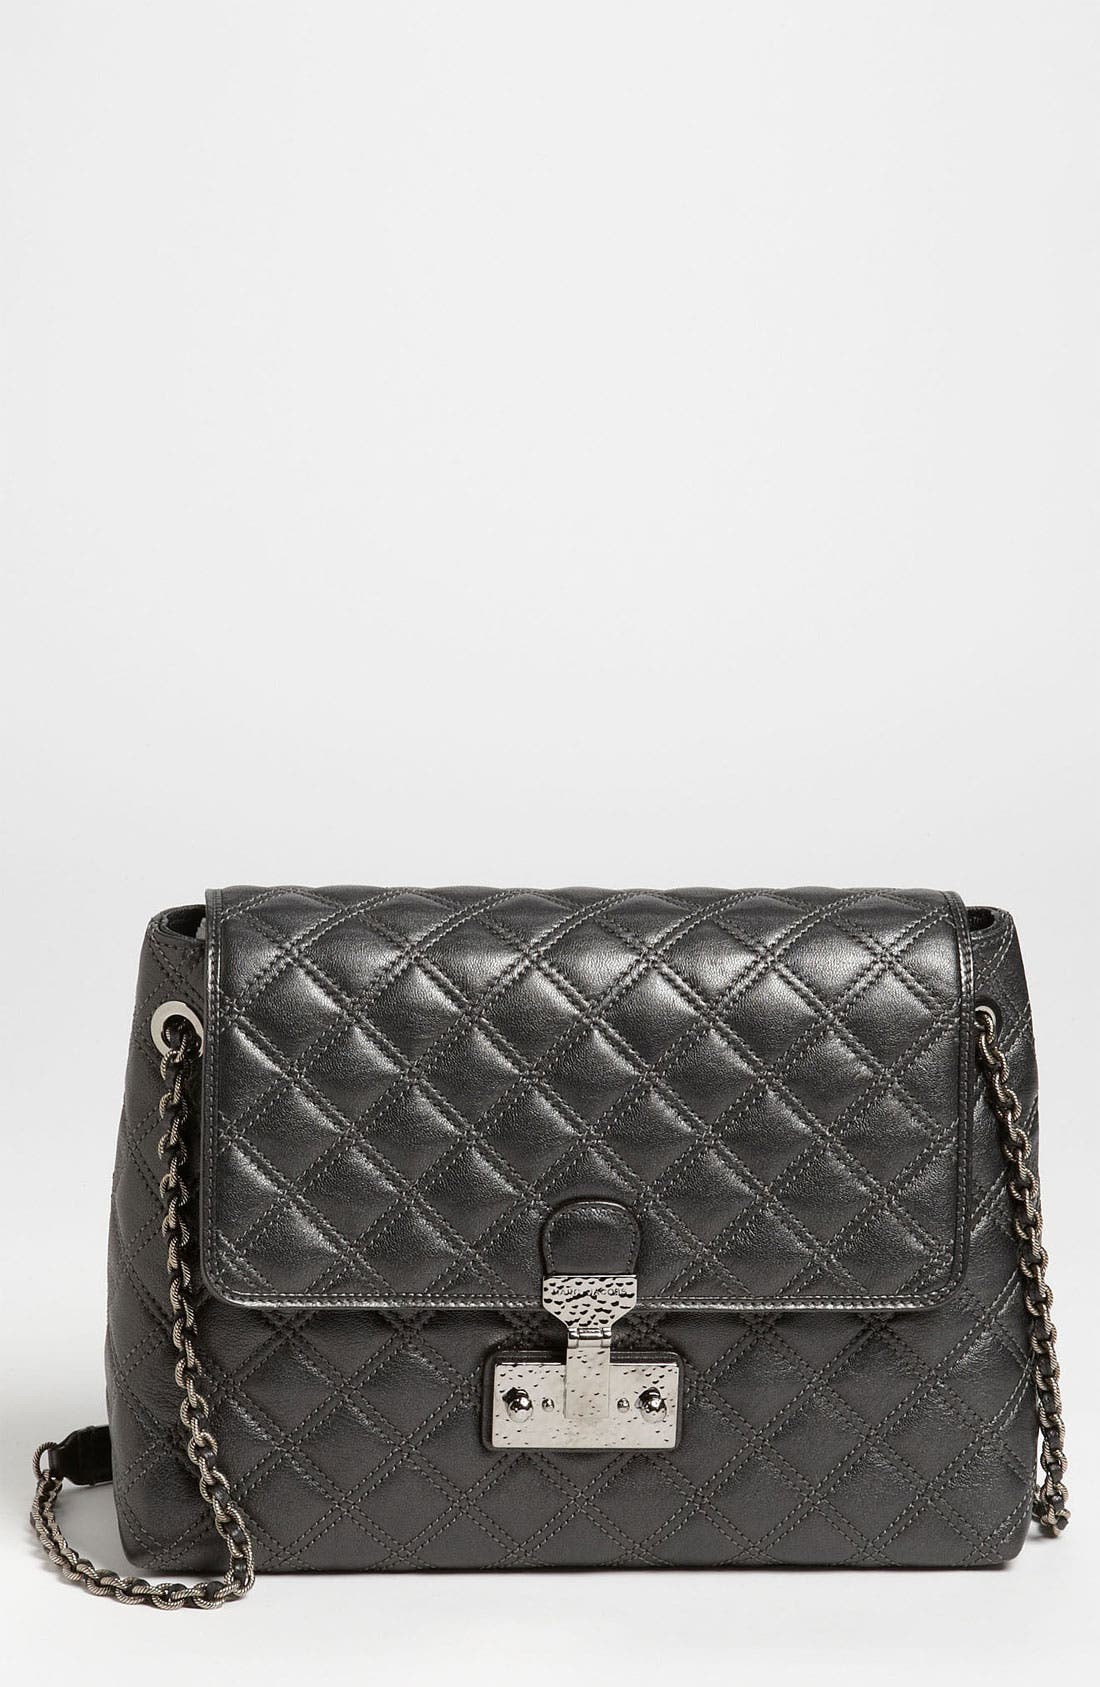 Alternate Image 1 Selected - MARC JACOBS 'Baroque XL Single' Leather Shoulder Bag